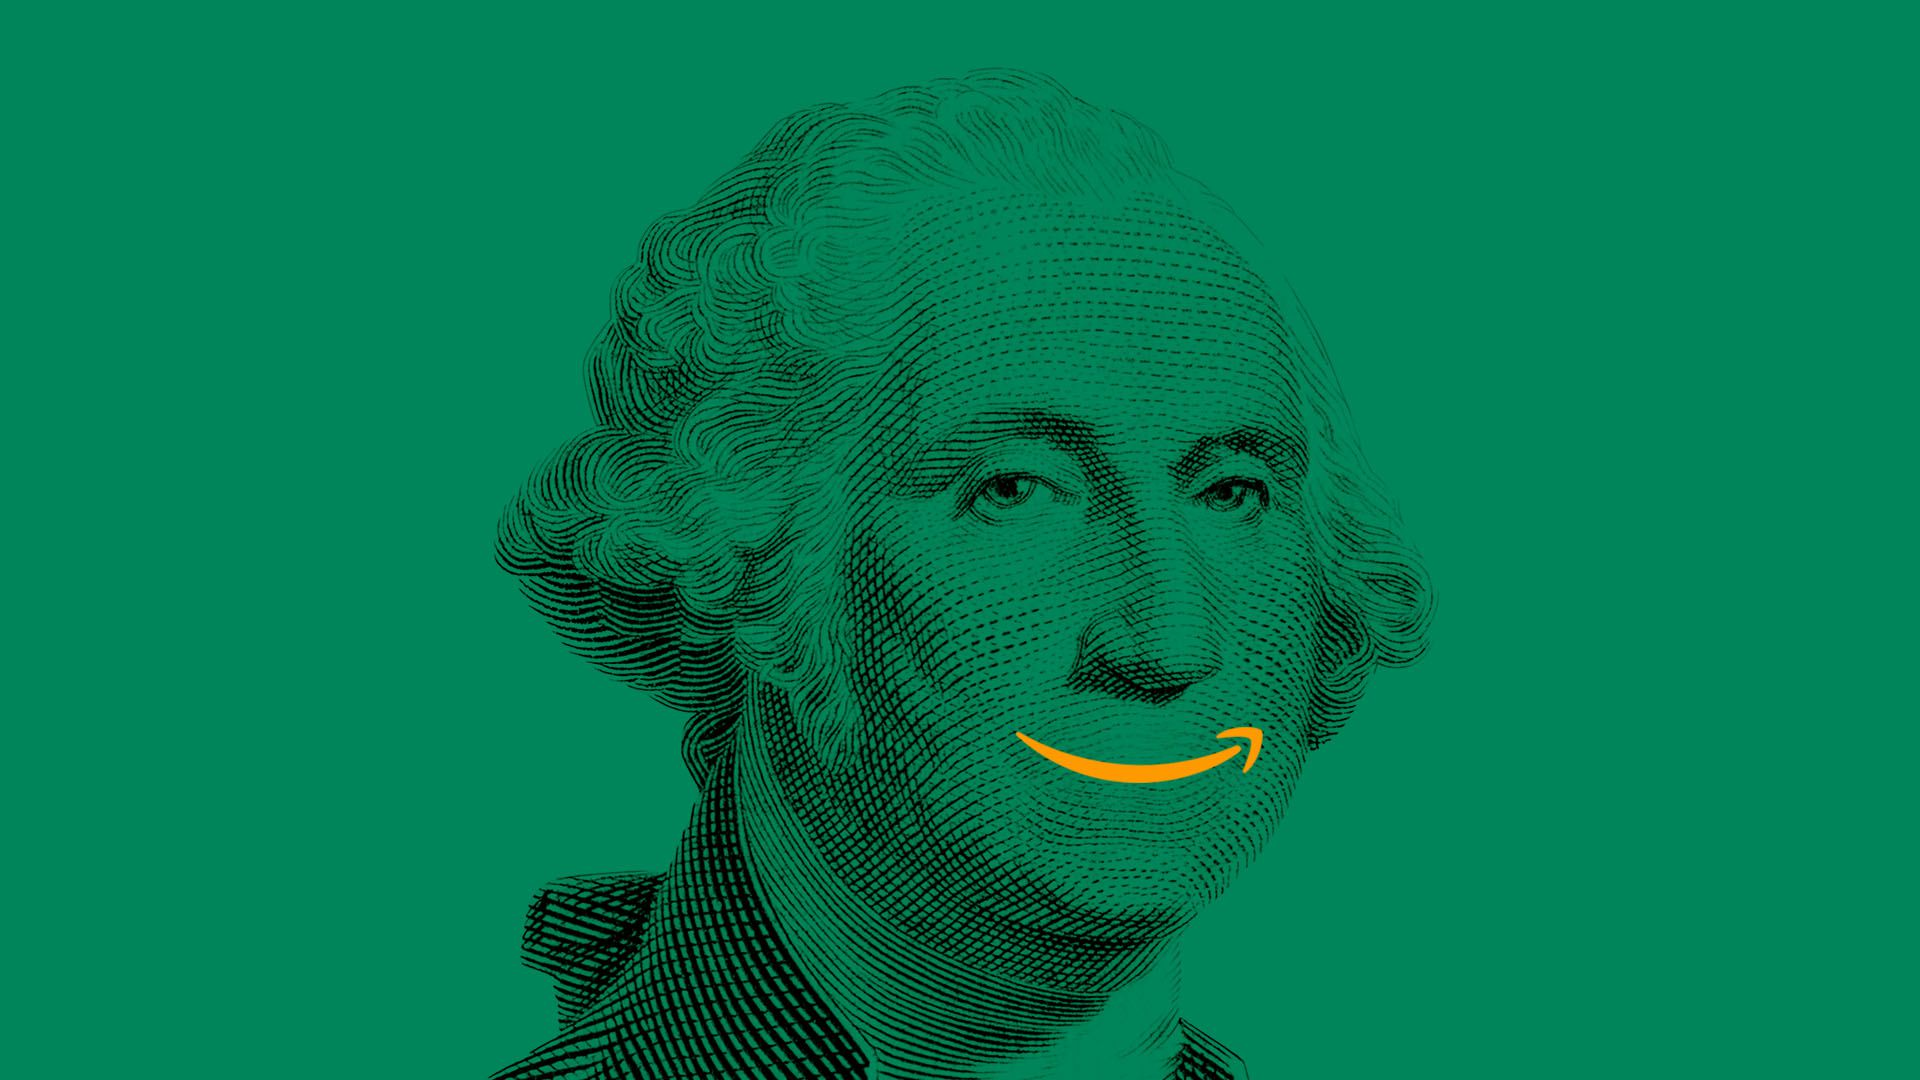 An Amazon logo overlaid on George Washington's mouth